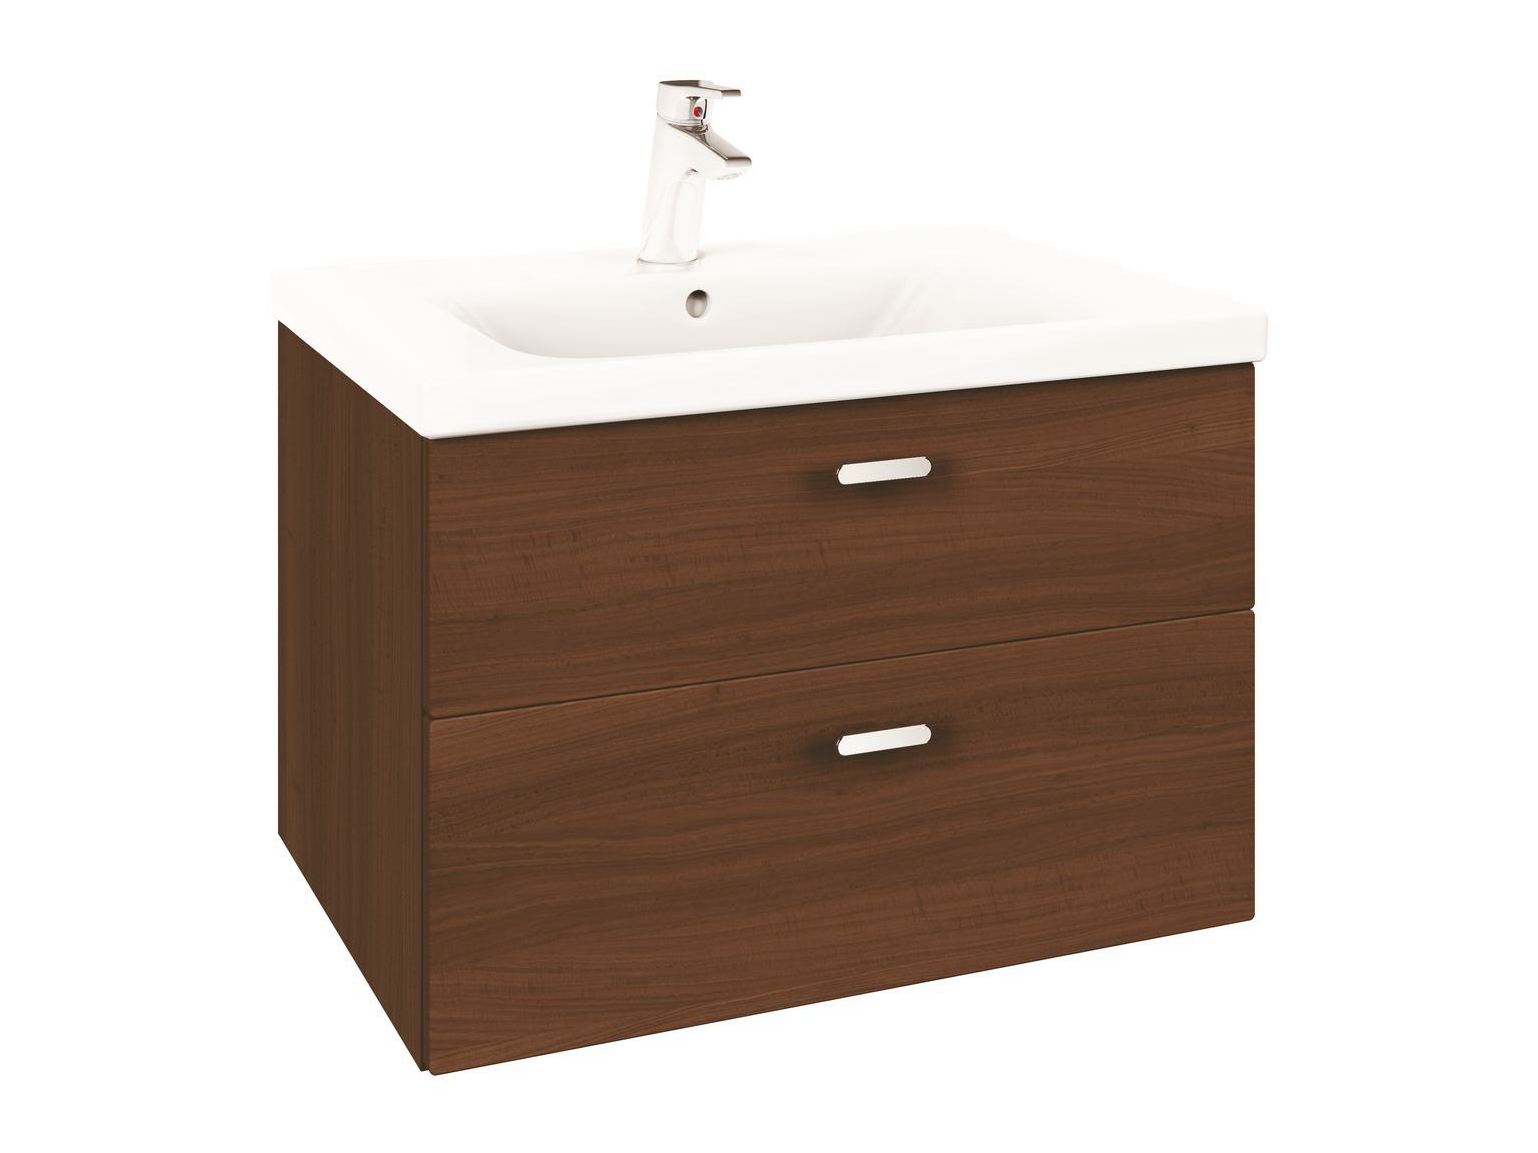 Mueble bajo lavabo simple suspendido con cajones connect for Bajo lavabo